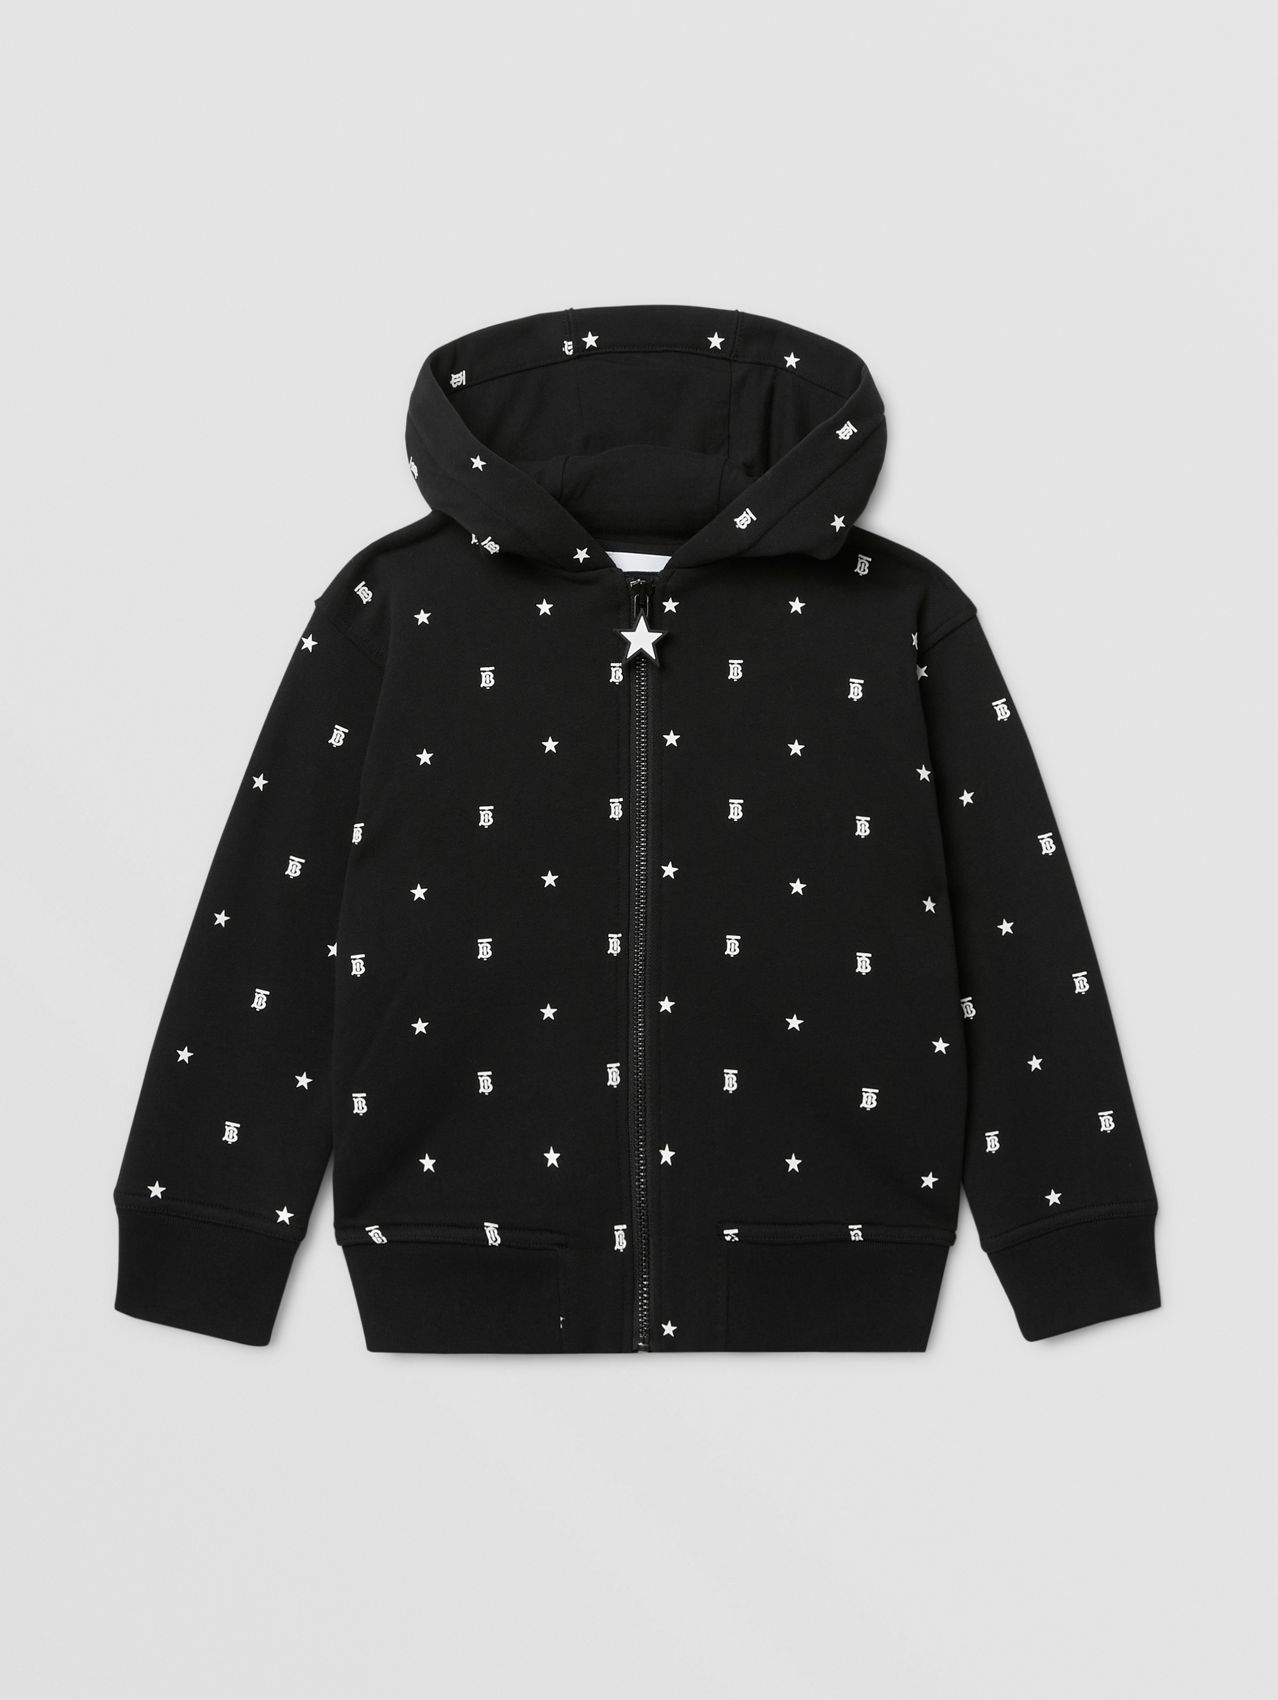 Star and Monogram Motif Cotton Hooded Top in Black